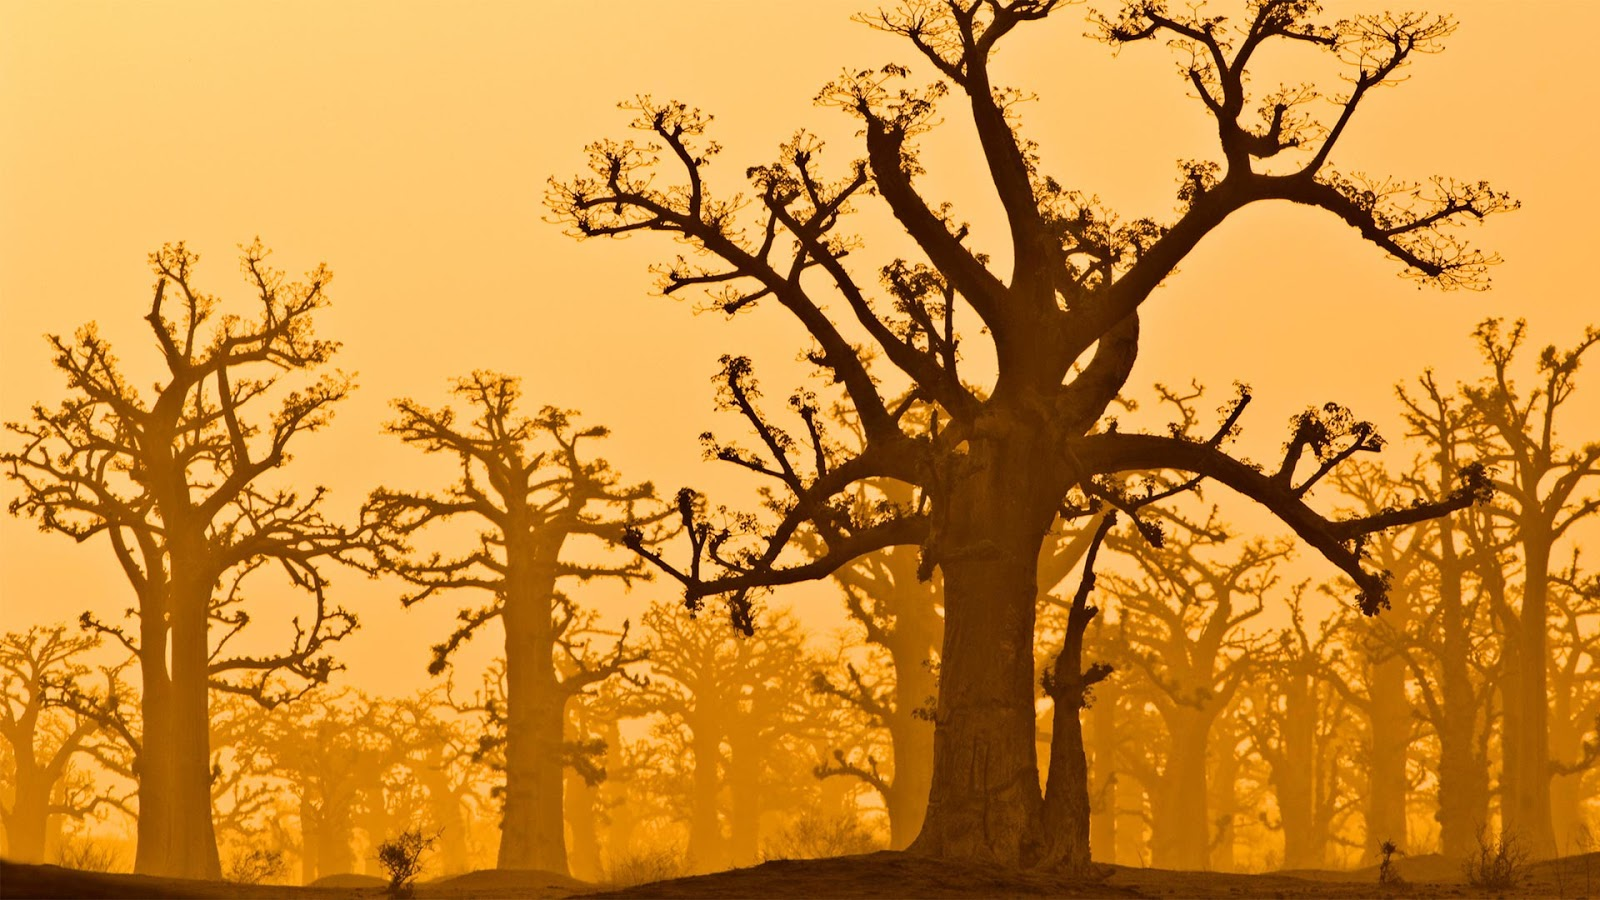 Baobab trees near Bandia Wildlife Reserve in Senegal © Frans Lanting/plainpicture